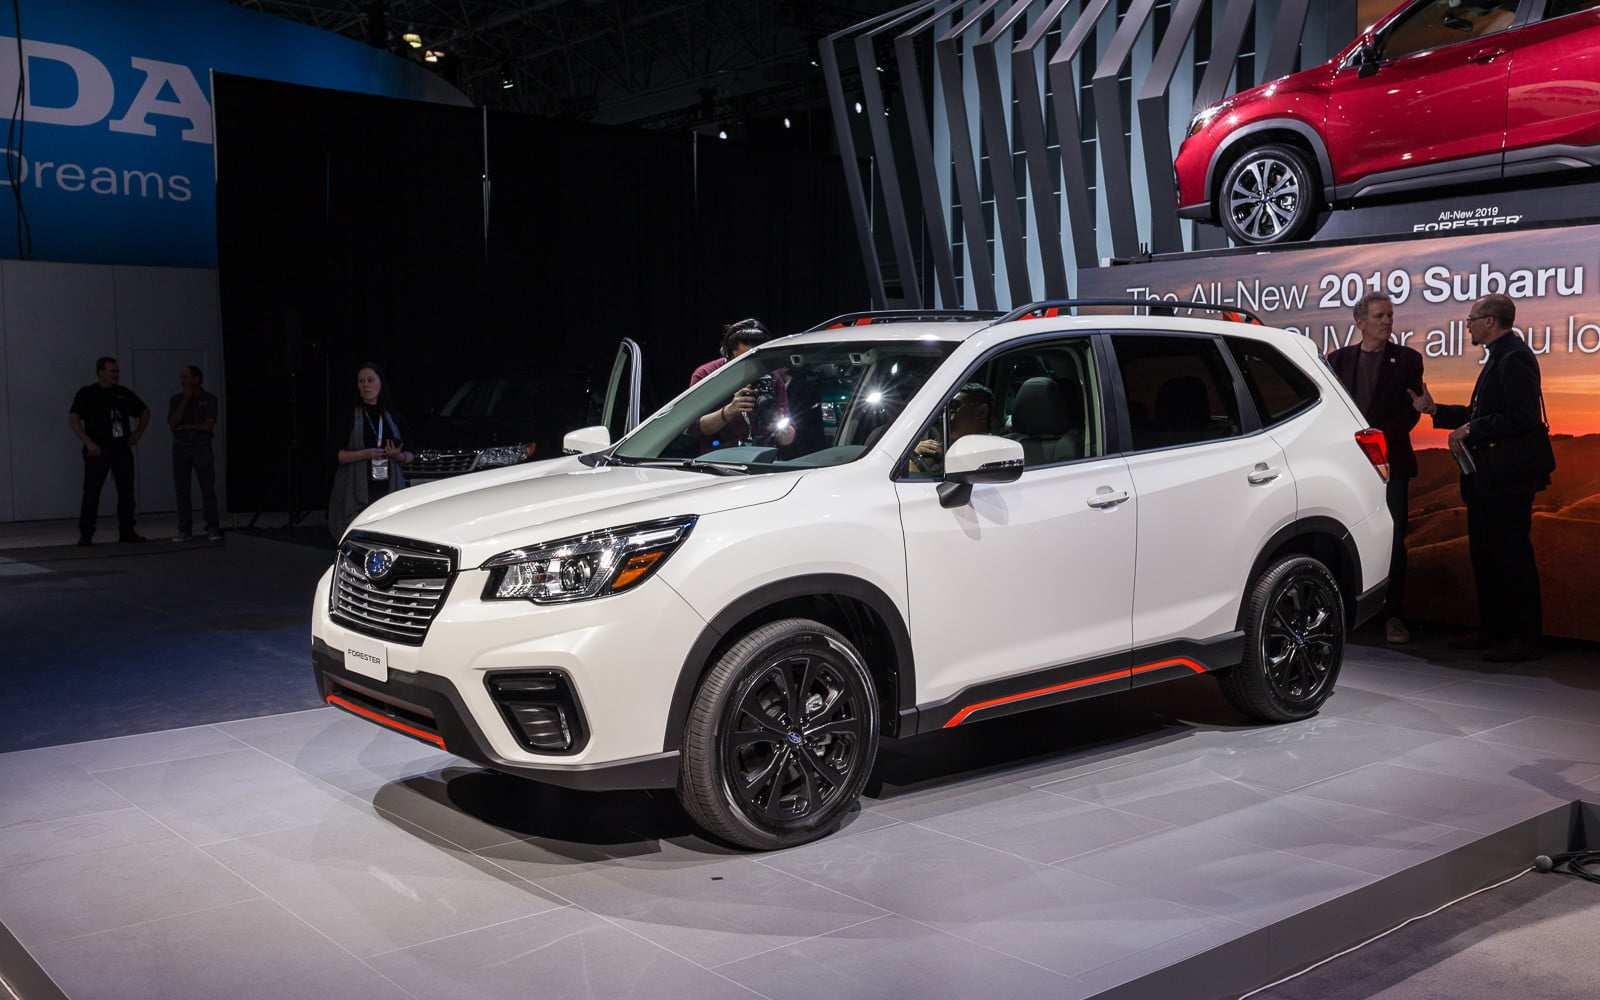 63 The Next Generation Subaru Forester 2019 Speed Test